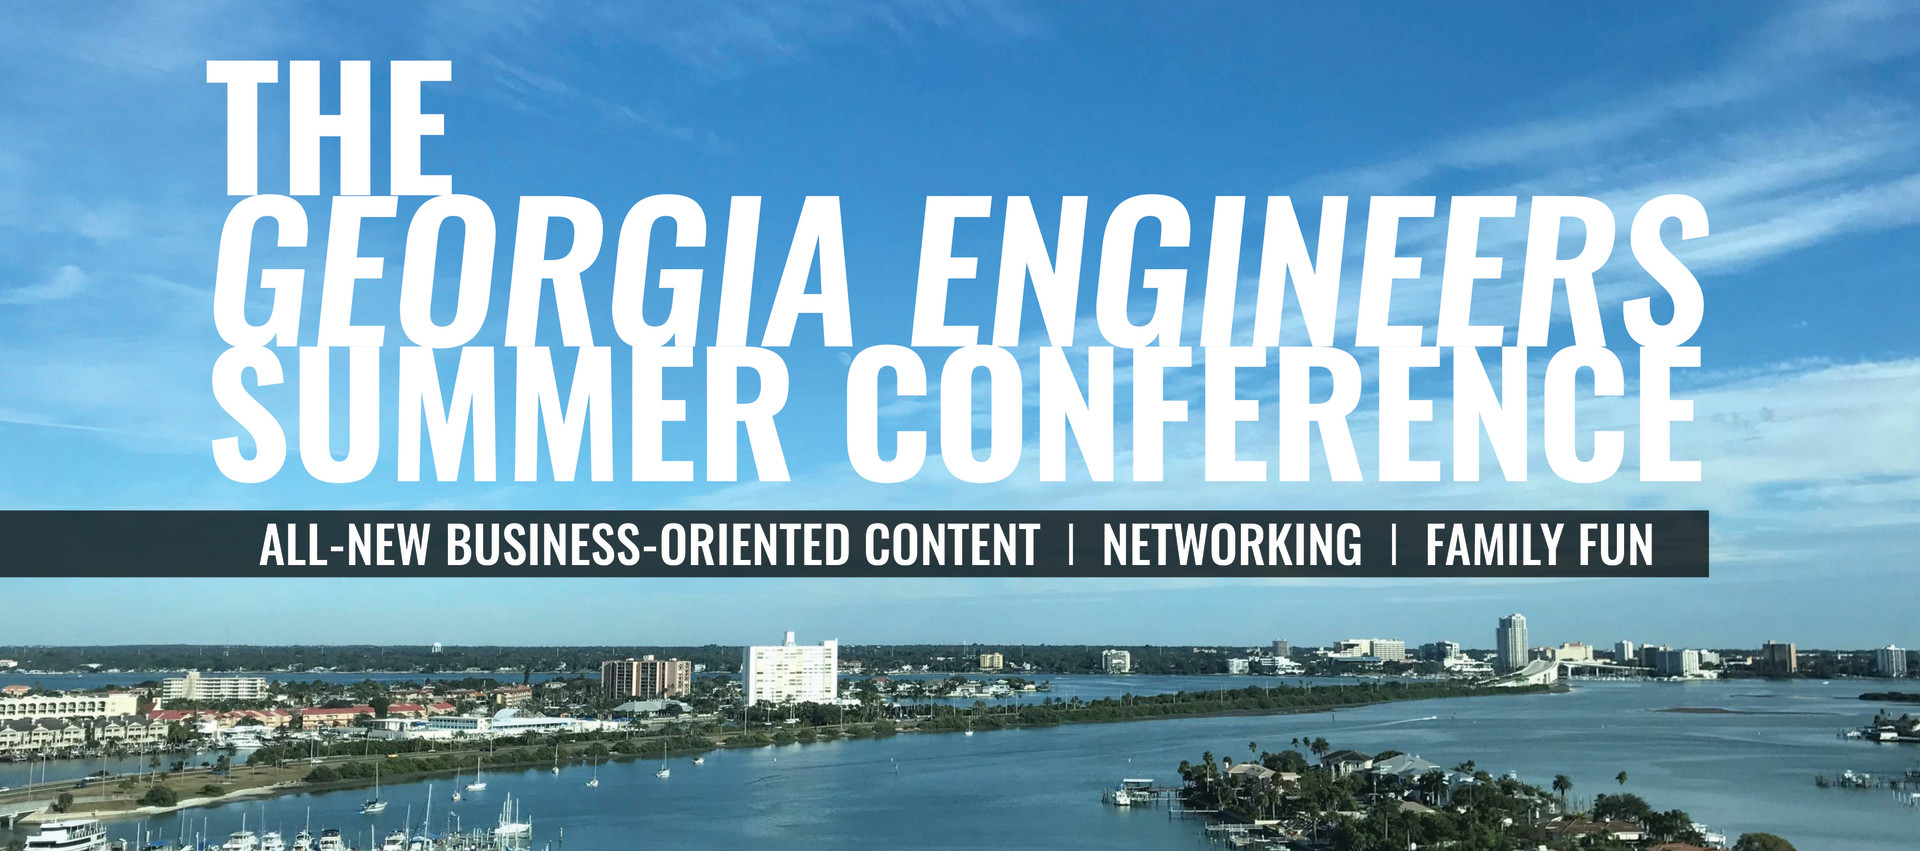 The 2017 Georgia Engineers Summer conference